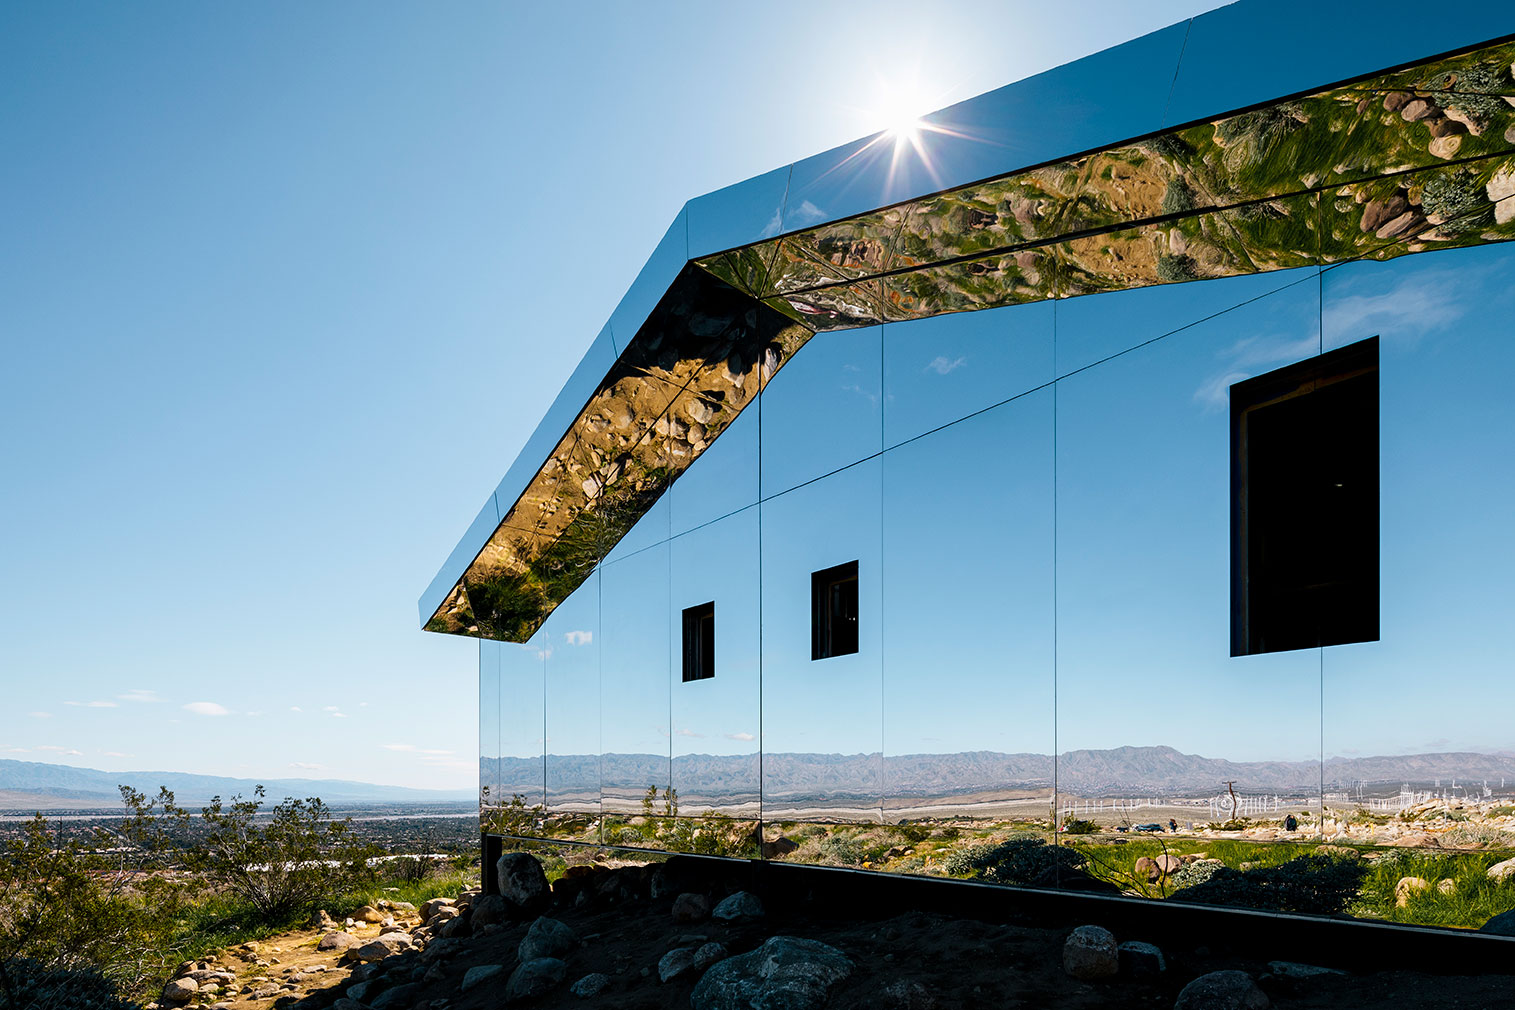 Mirage by Doug Aitken in the Californian desert